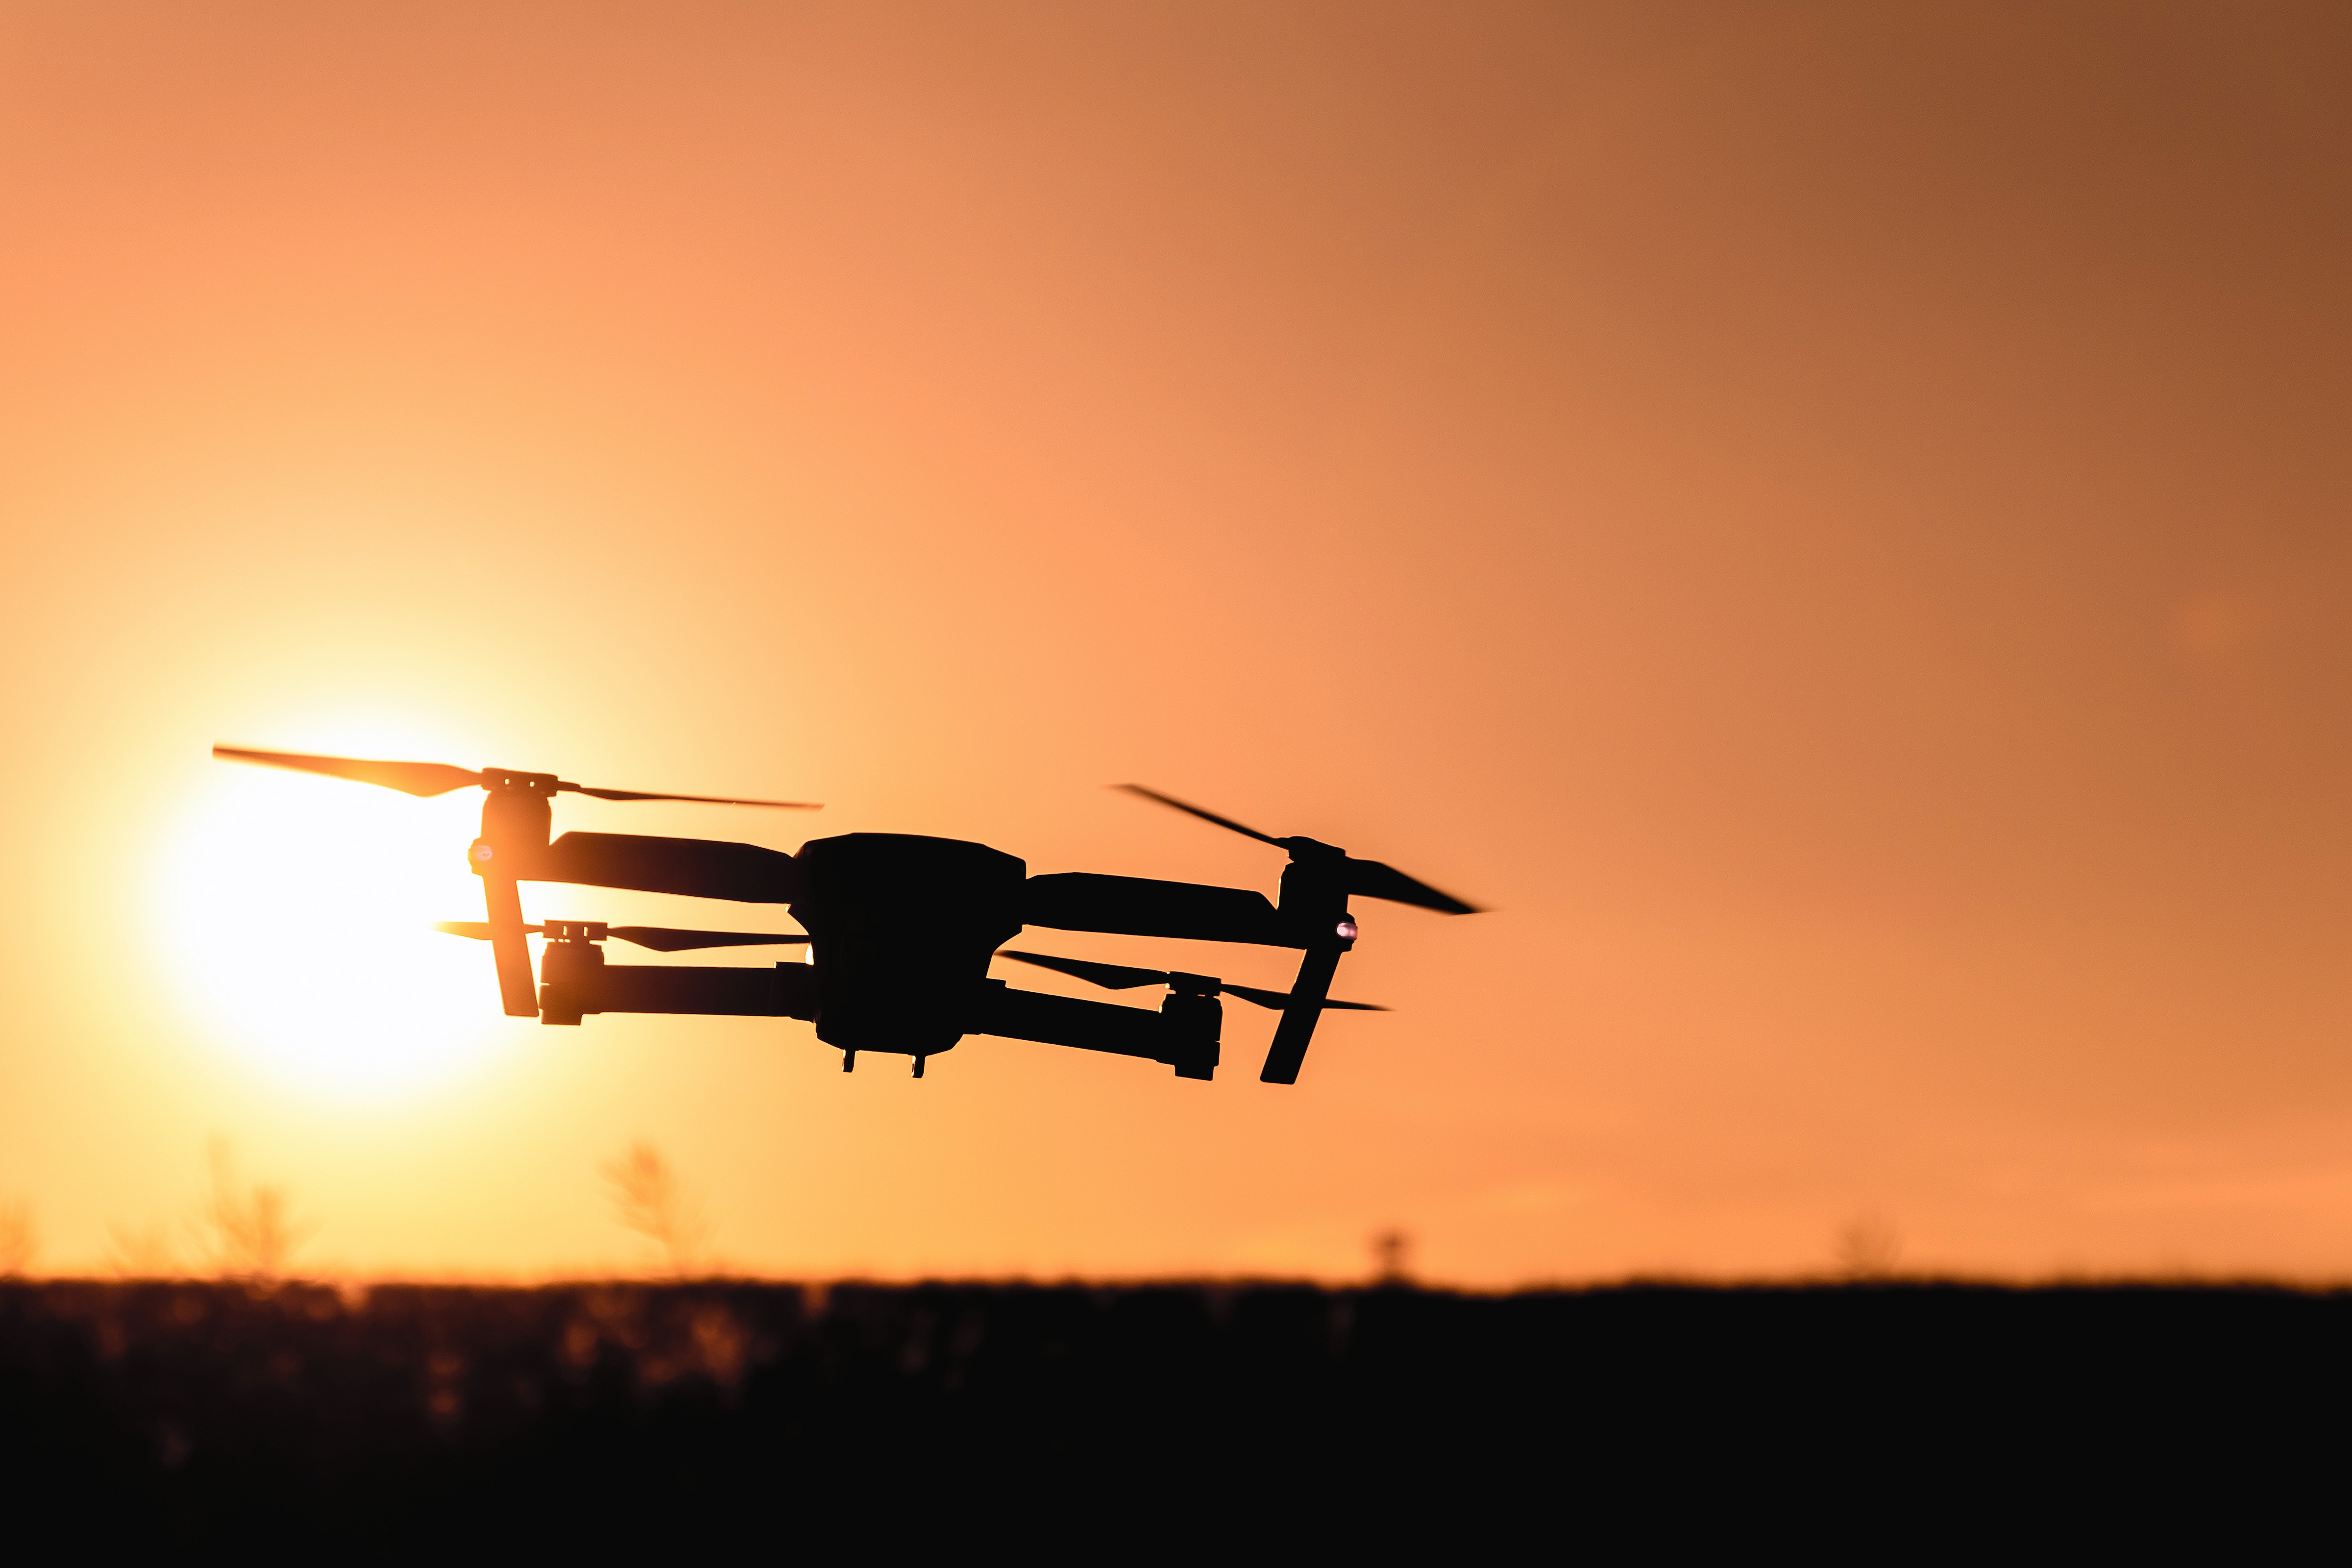 Emergency Medical Services: Are Drones the Future?